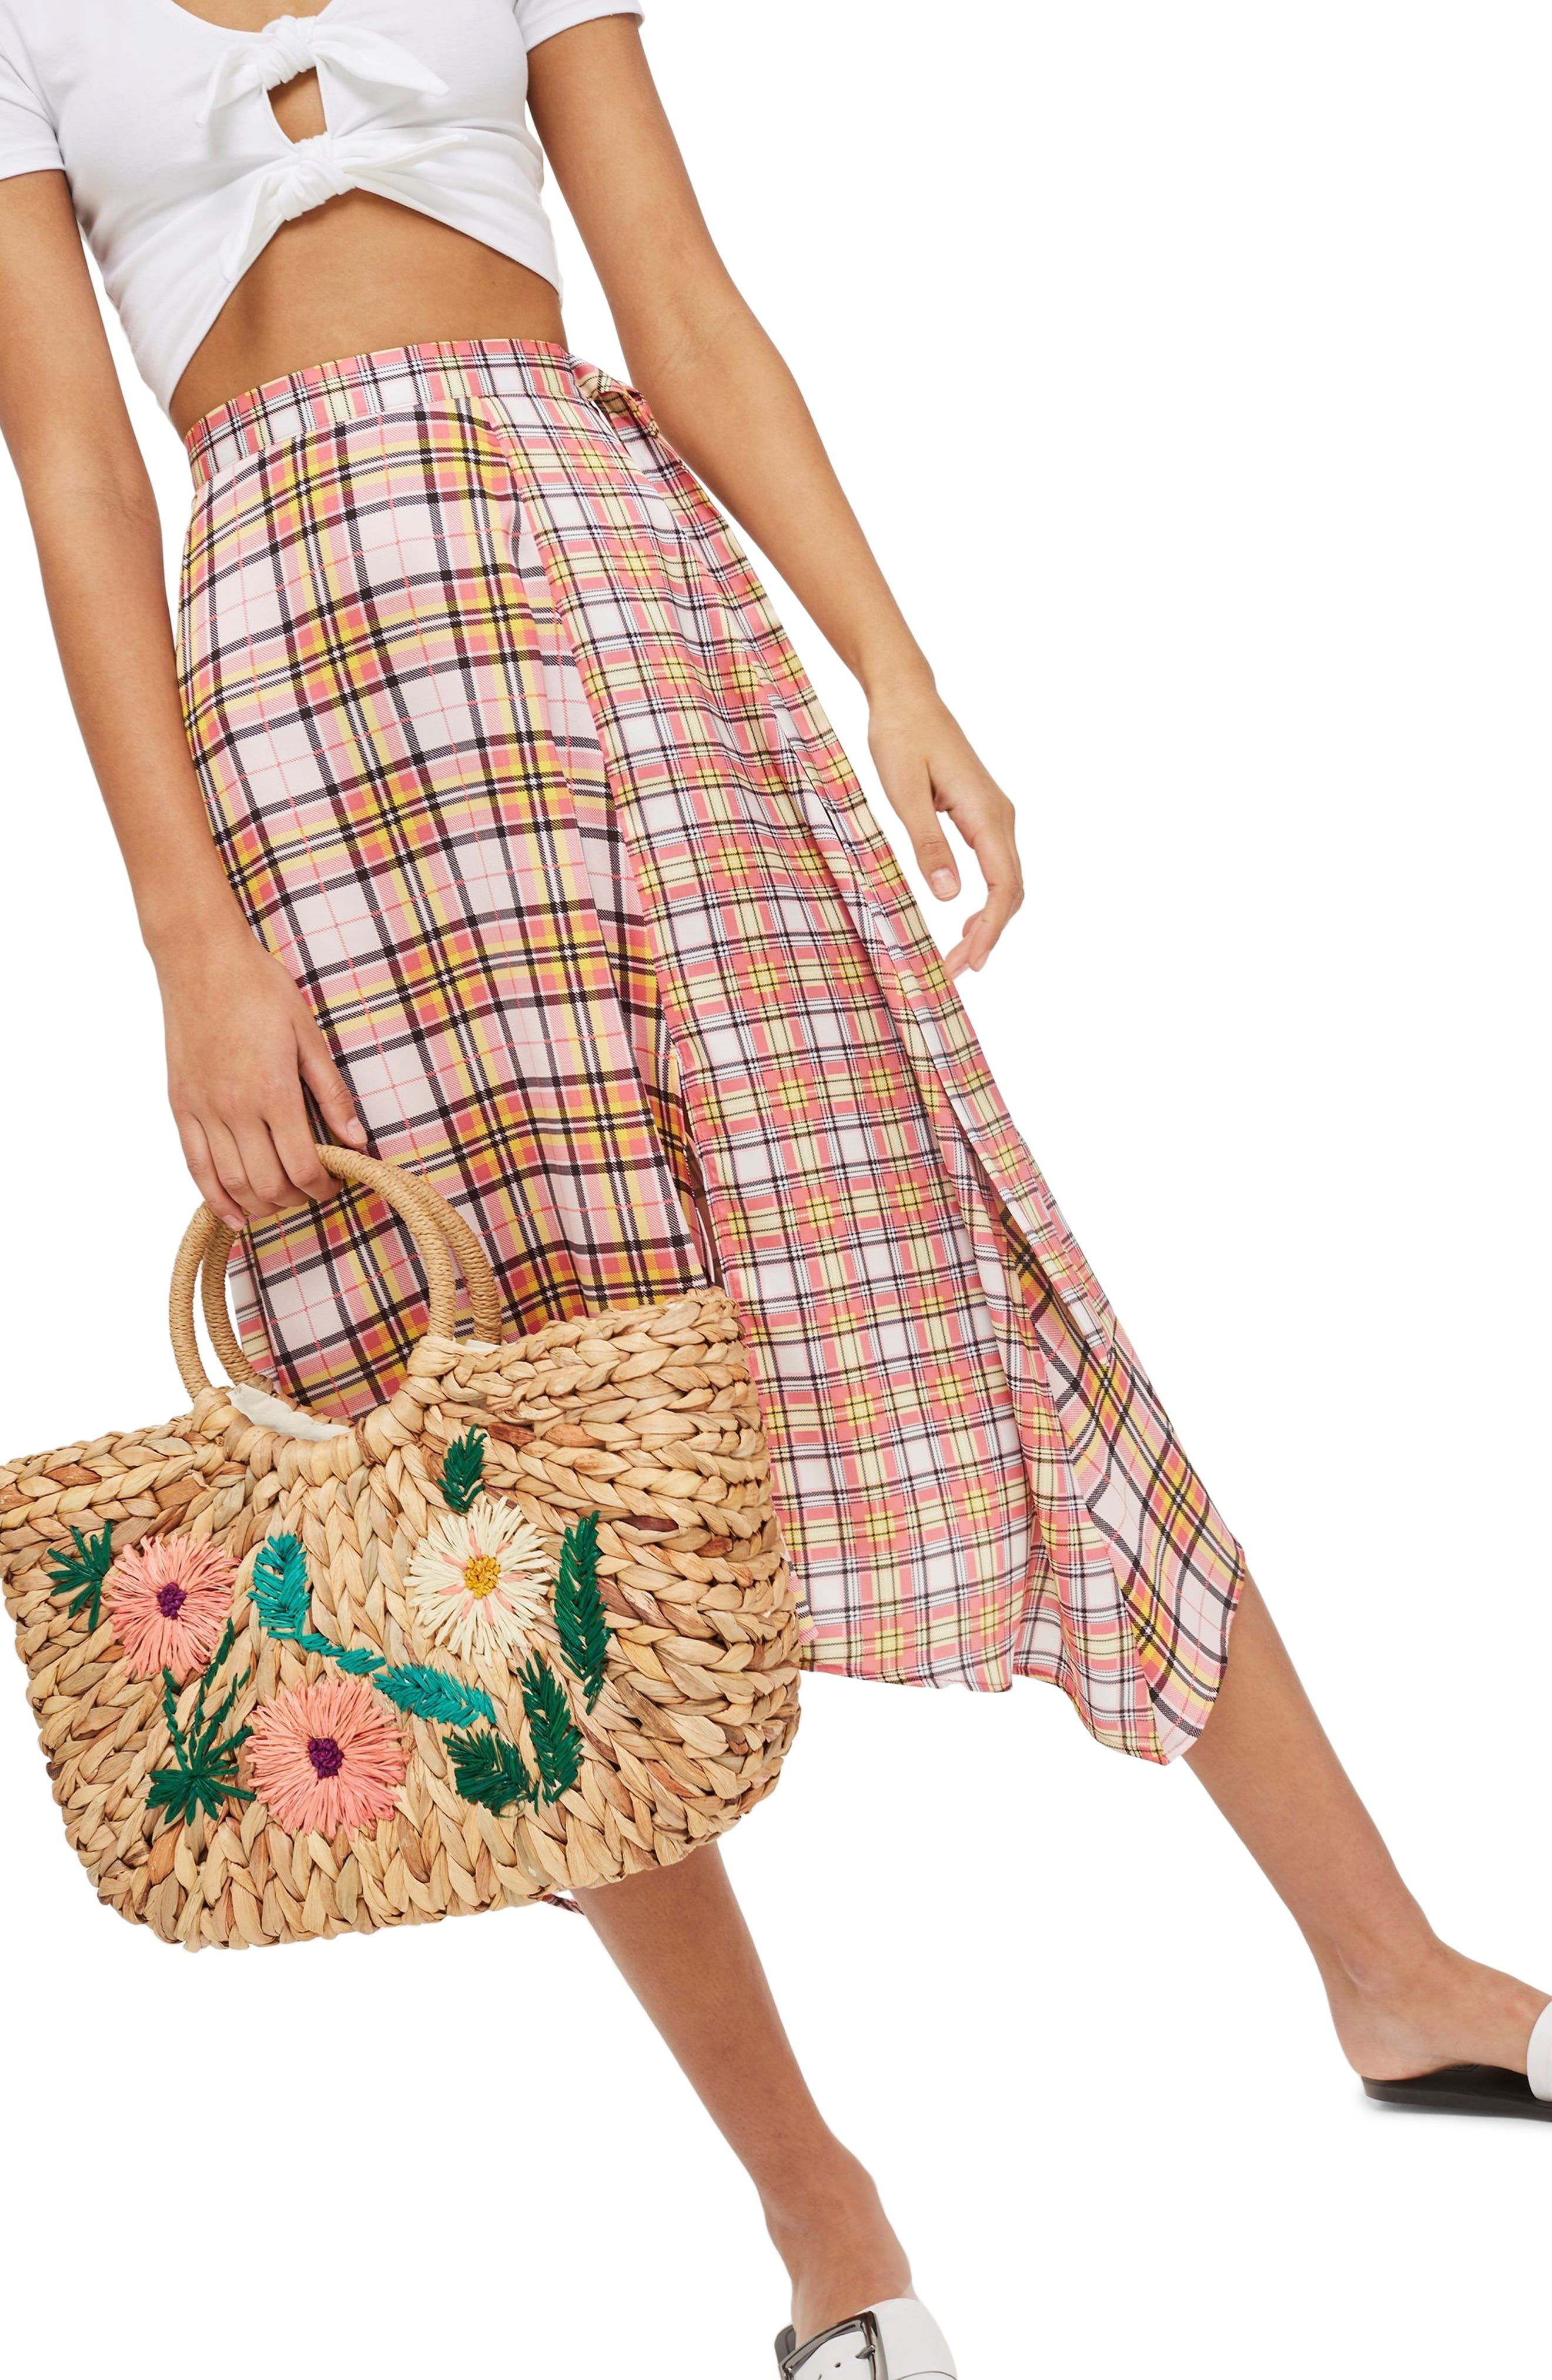 Beverly Floral Embroidered Straw Tote Bag,                             Alternate thumbnail 2, color,                             Nude Multi